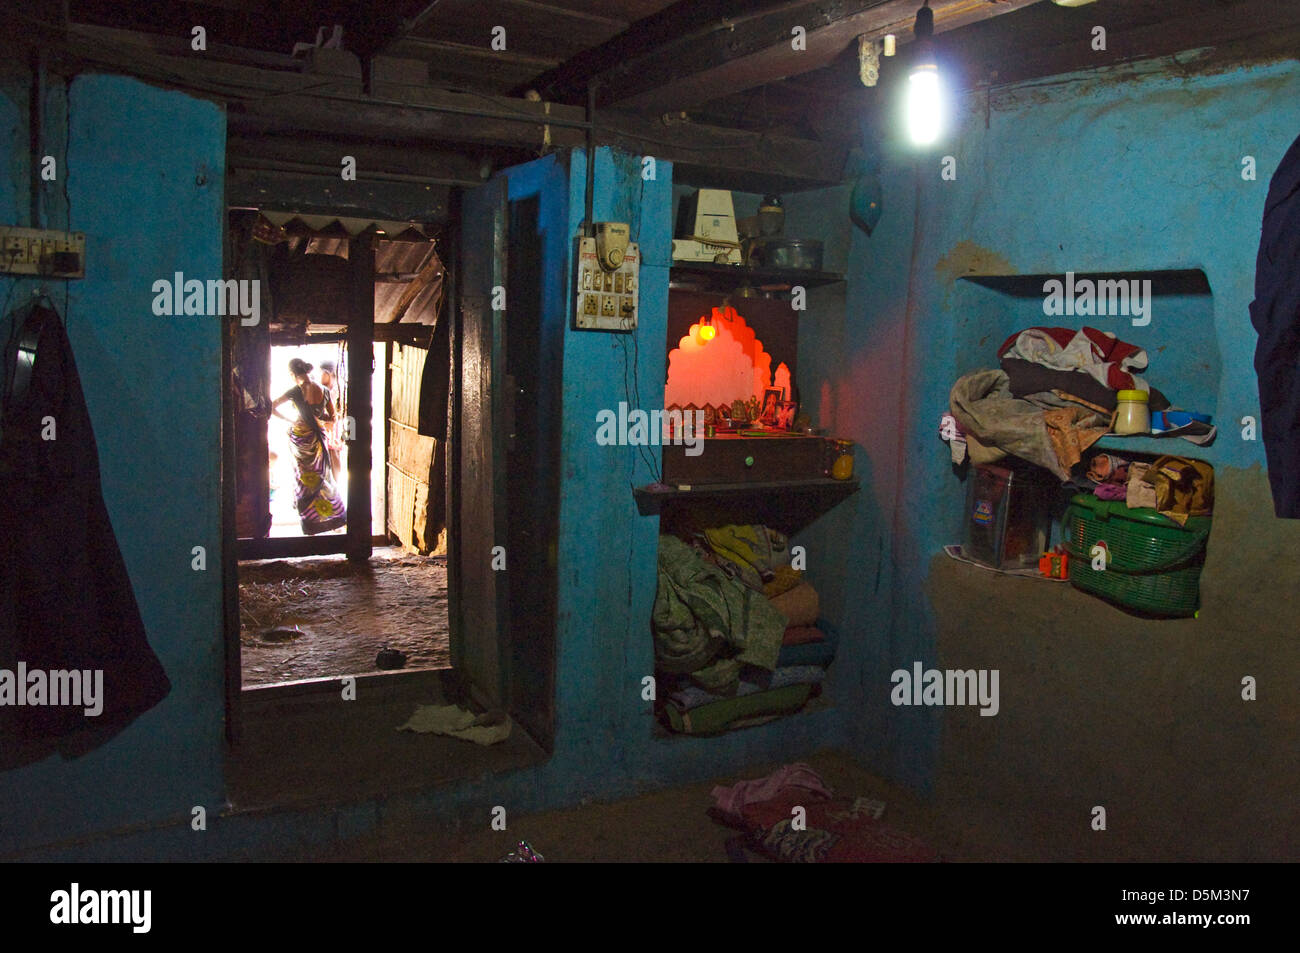 Rural Indian Home Interior With Hindu Shrine In Corner Of Room In  Khubalivali Village Mulshi Valley Paud Maharashtra India